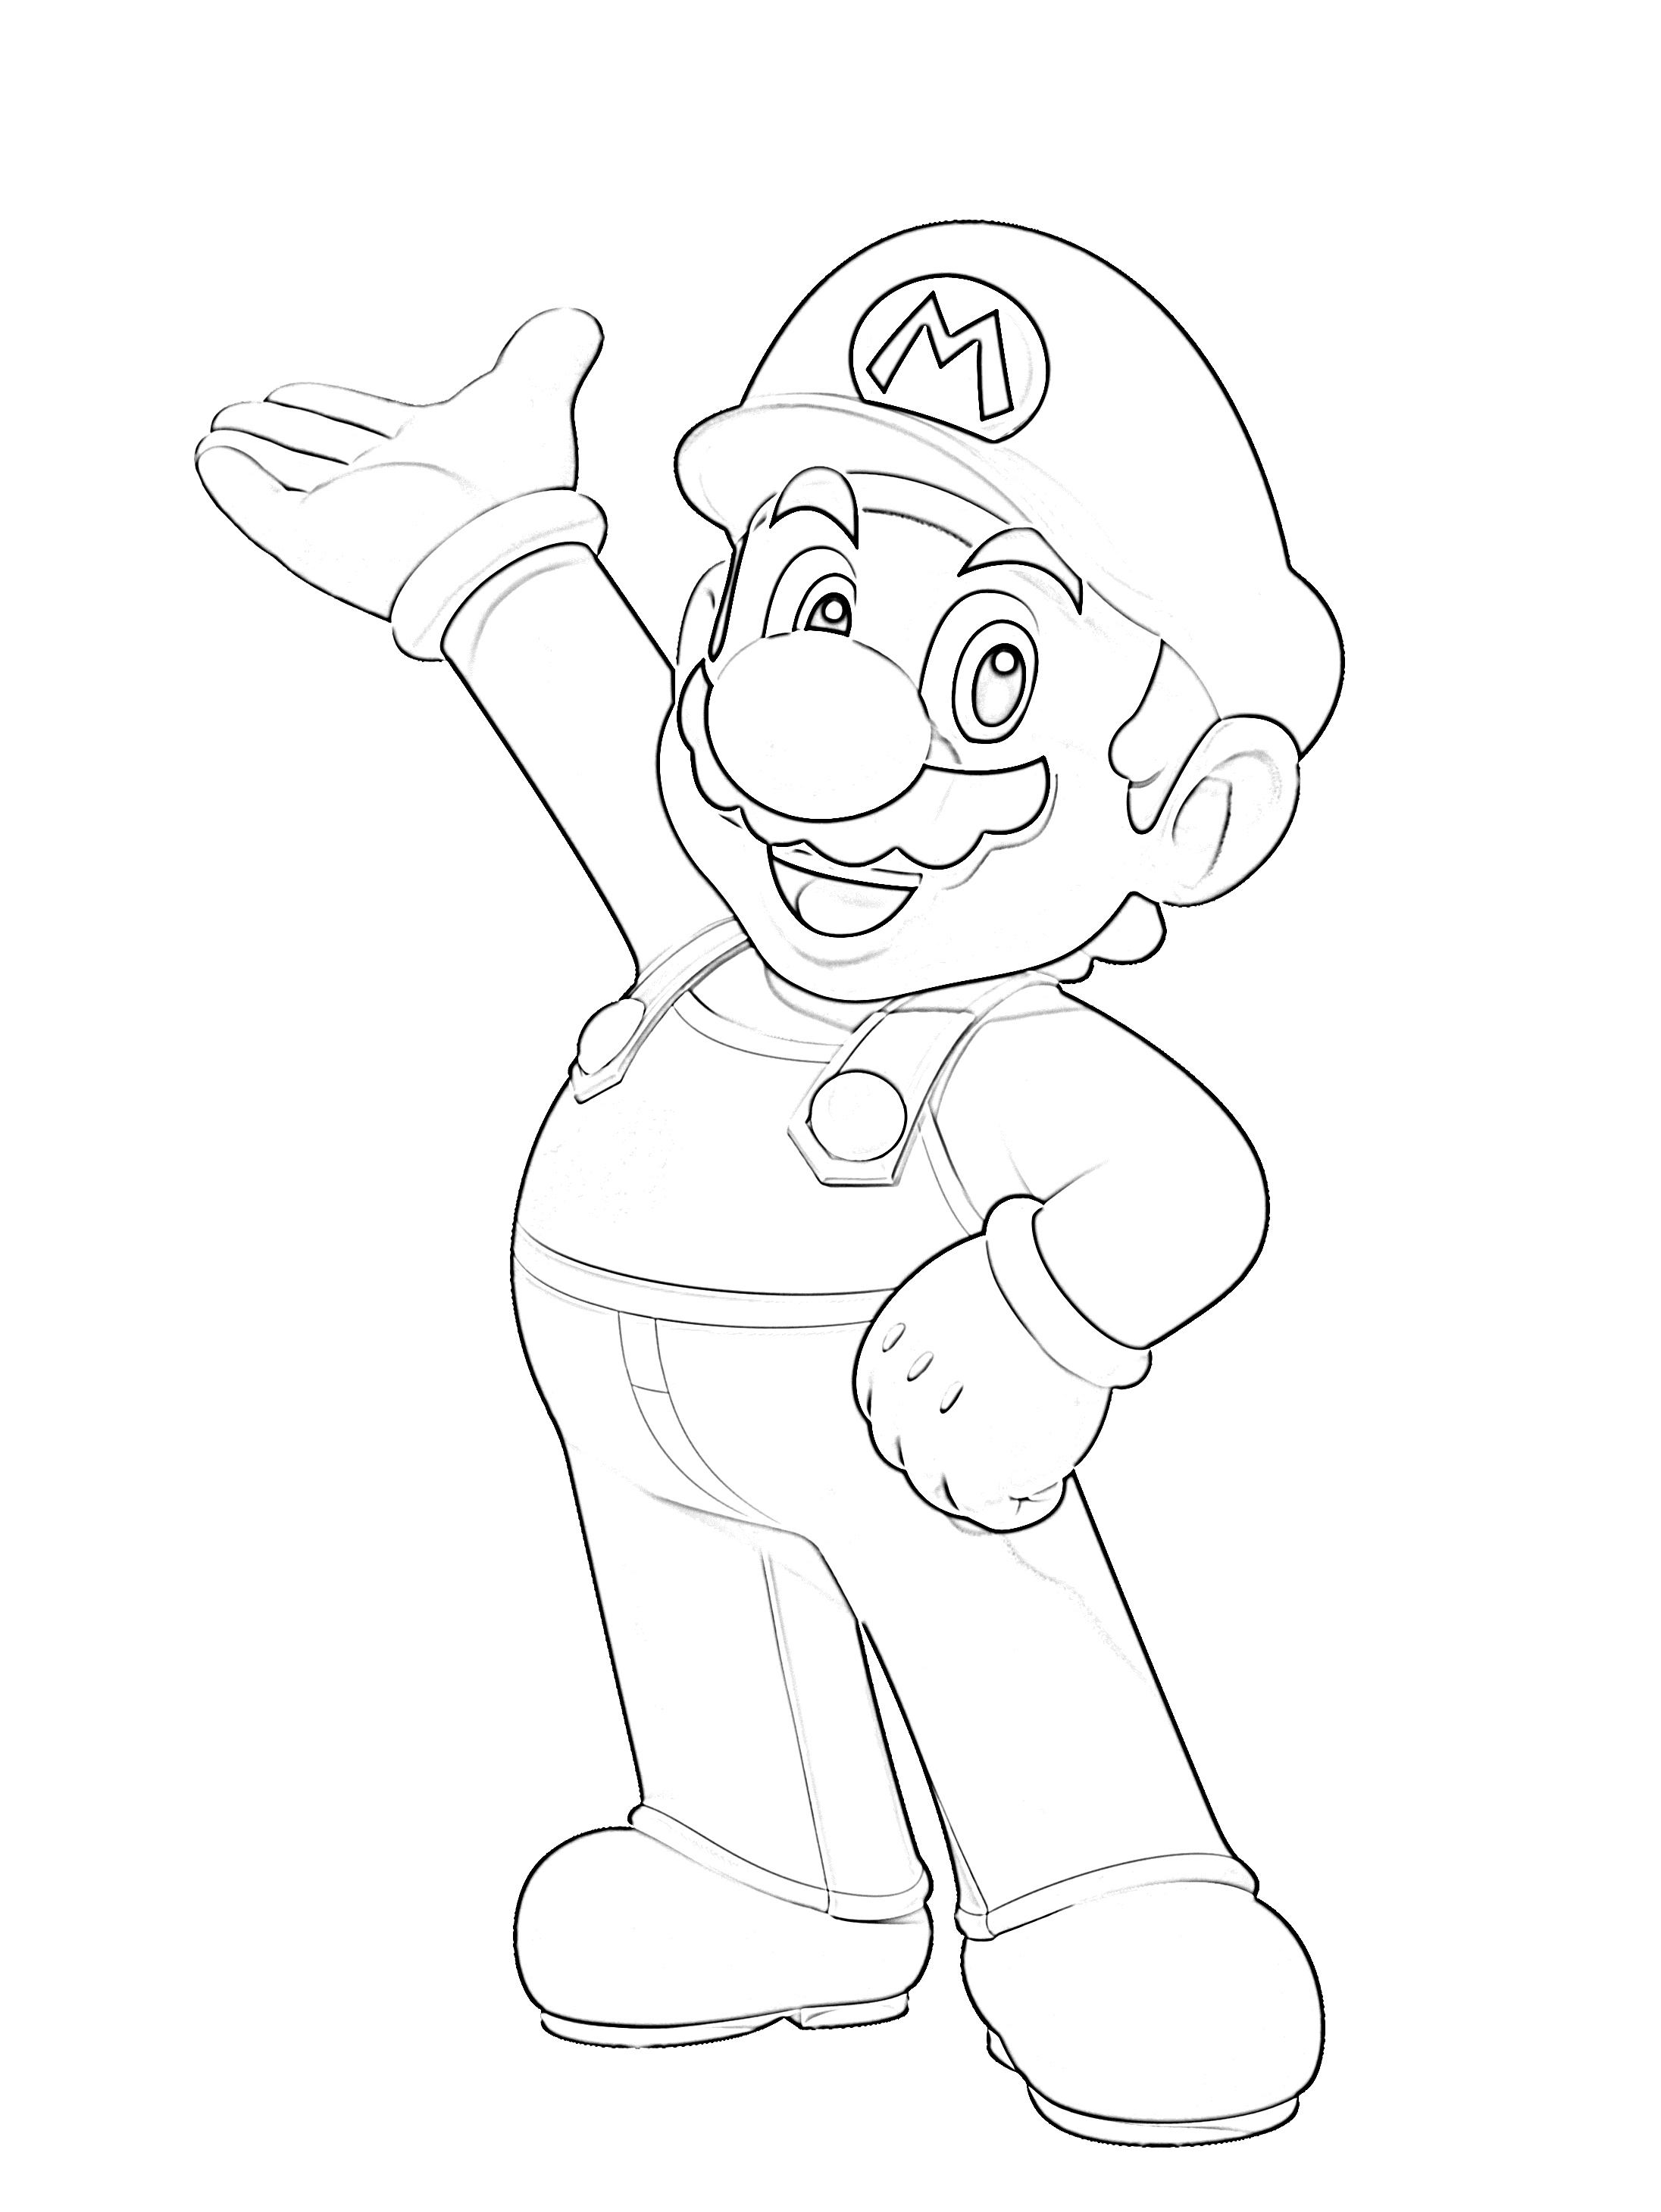 Super mario hand on hip coloring page